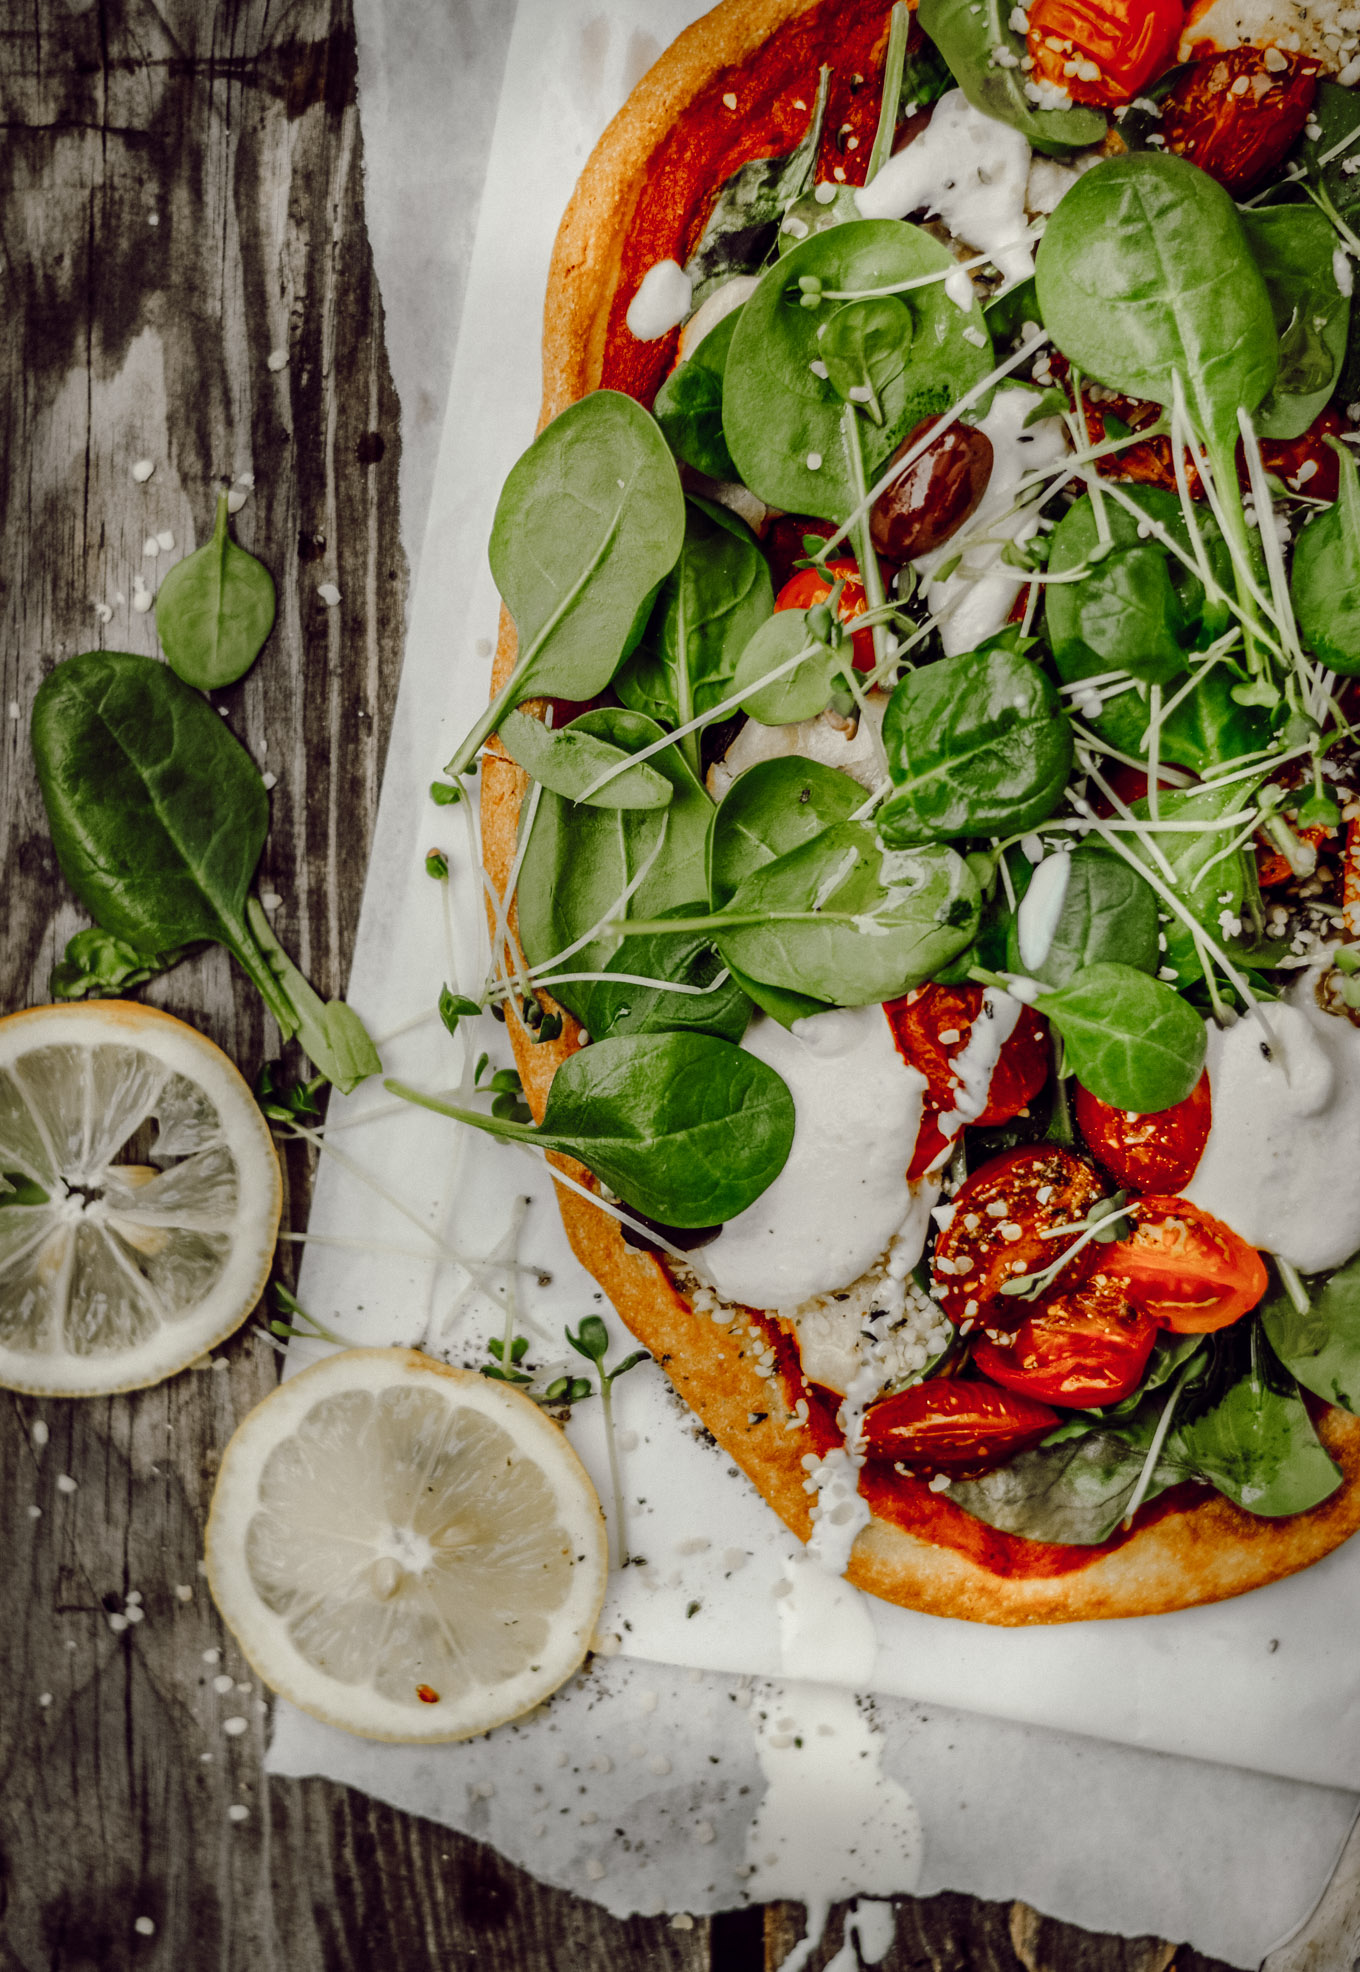 der ultimative knusprige pizzaboden aus quinoa rezept f r spinat pizza mit cashew cream. Black Bedroom Furniture Sets. Home Design Ideas